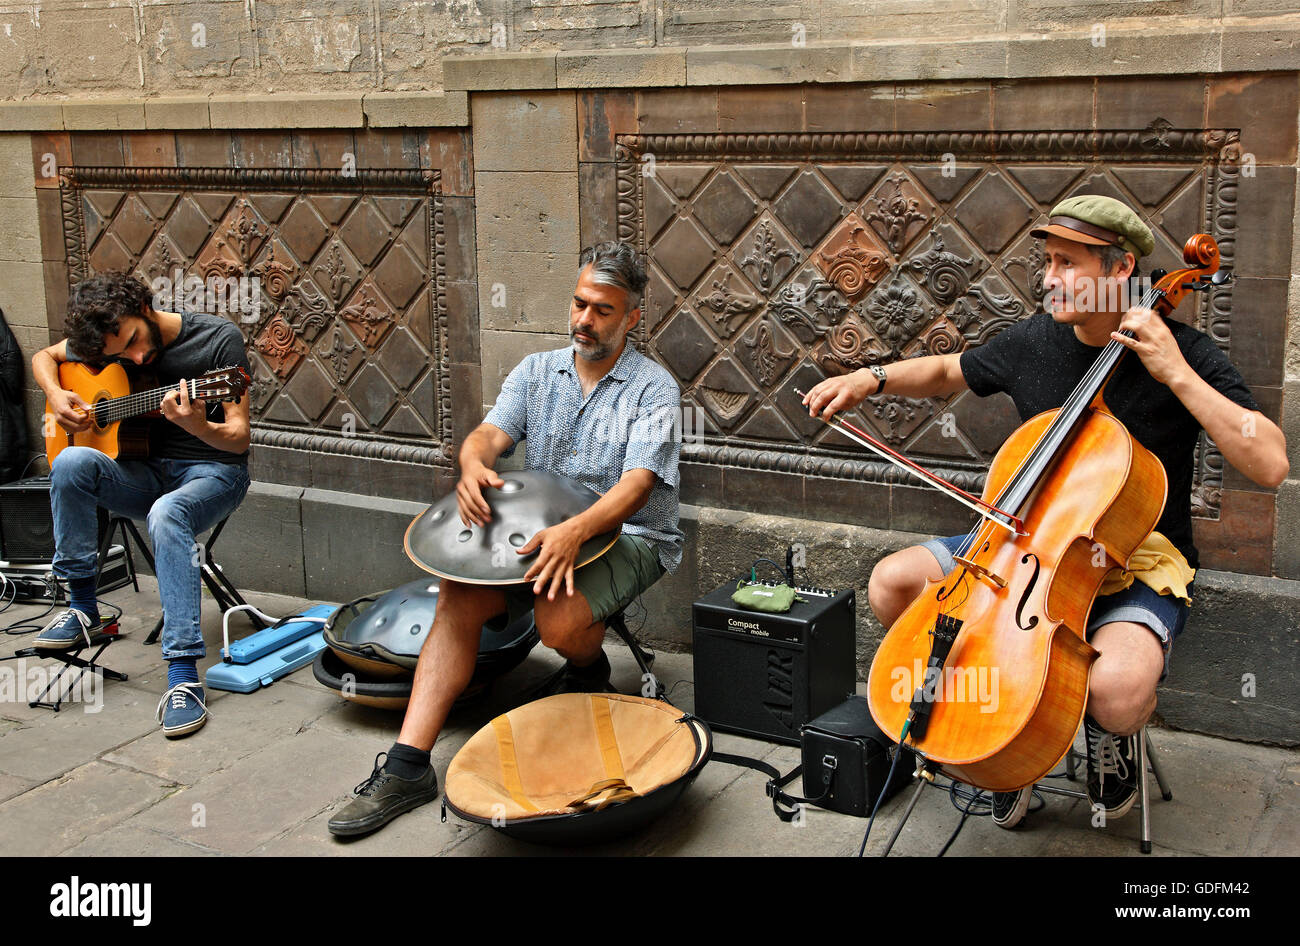 Street musicians in the Gothic Quarter (Barri Gotic), Barcelona, Catalonia, Spain. - Stock Image